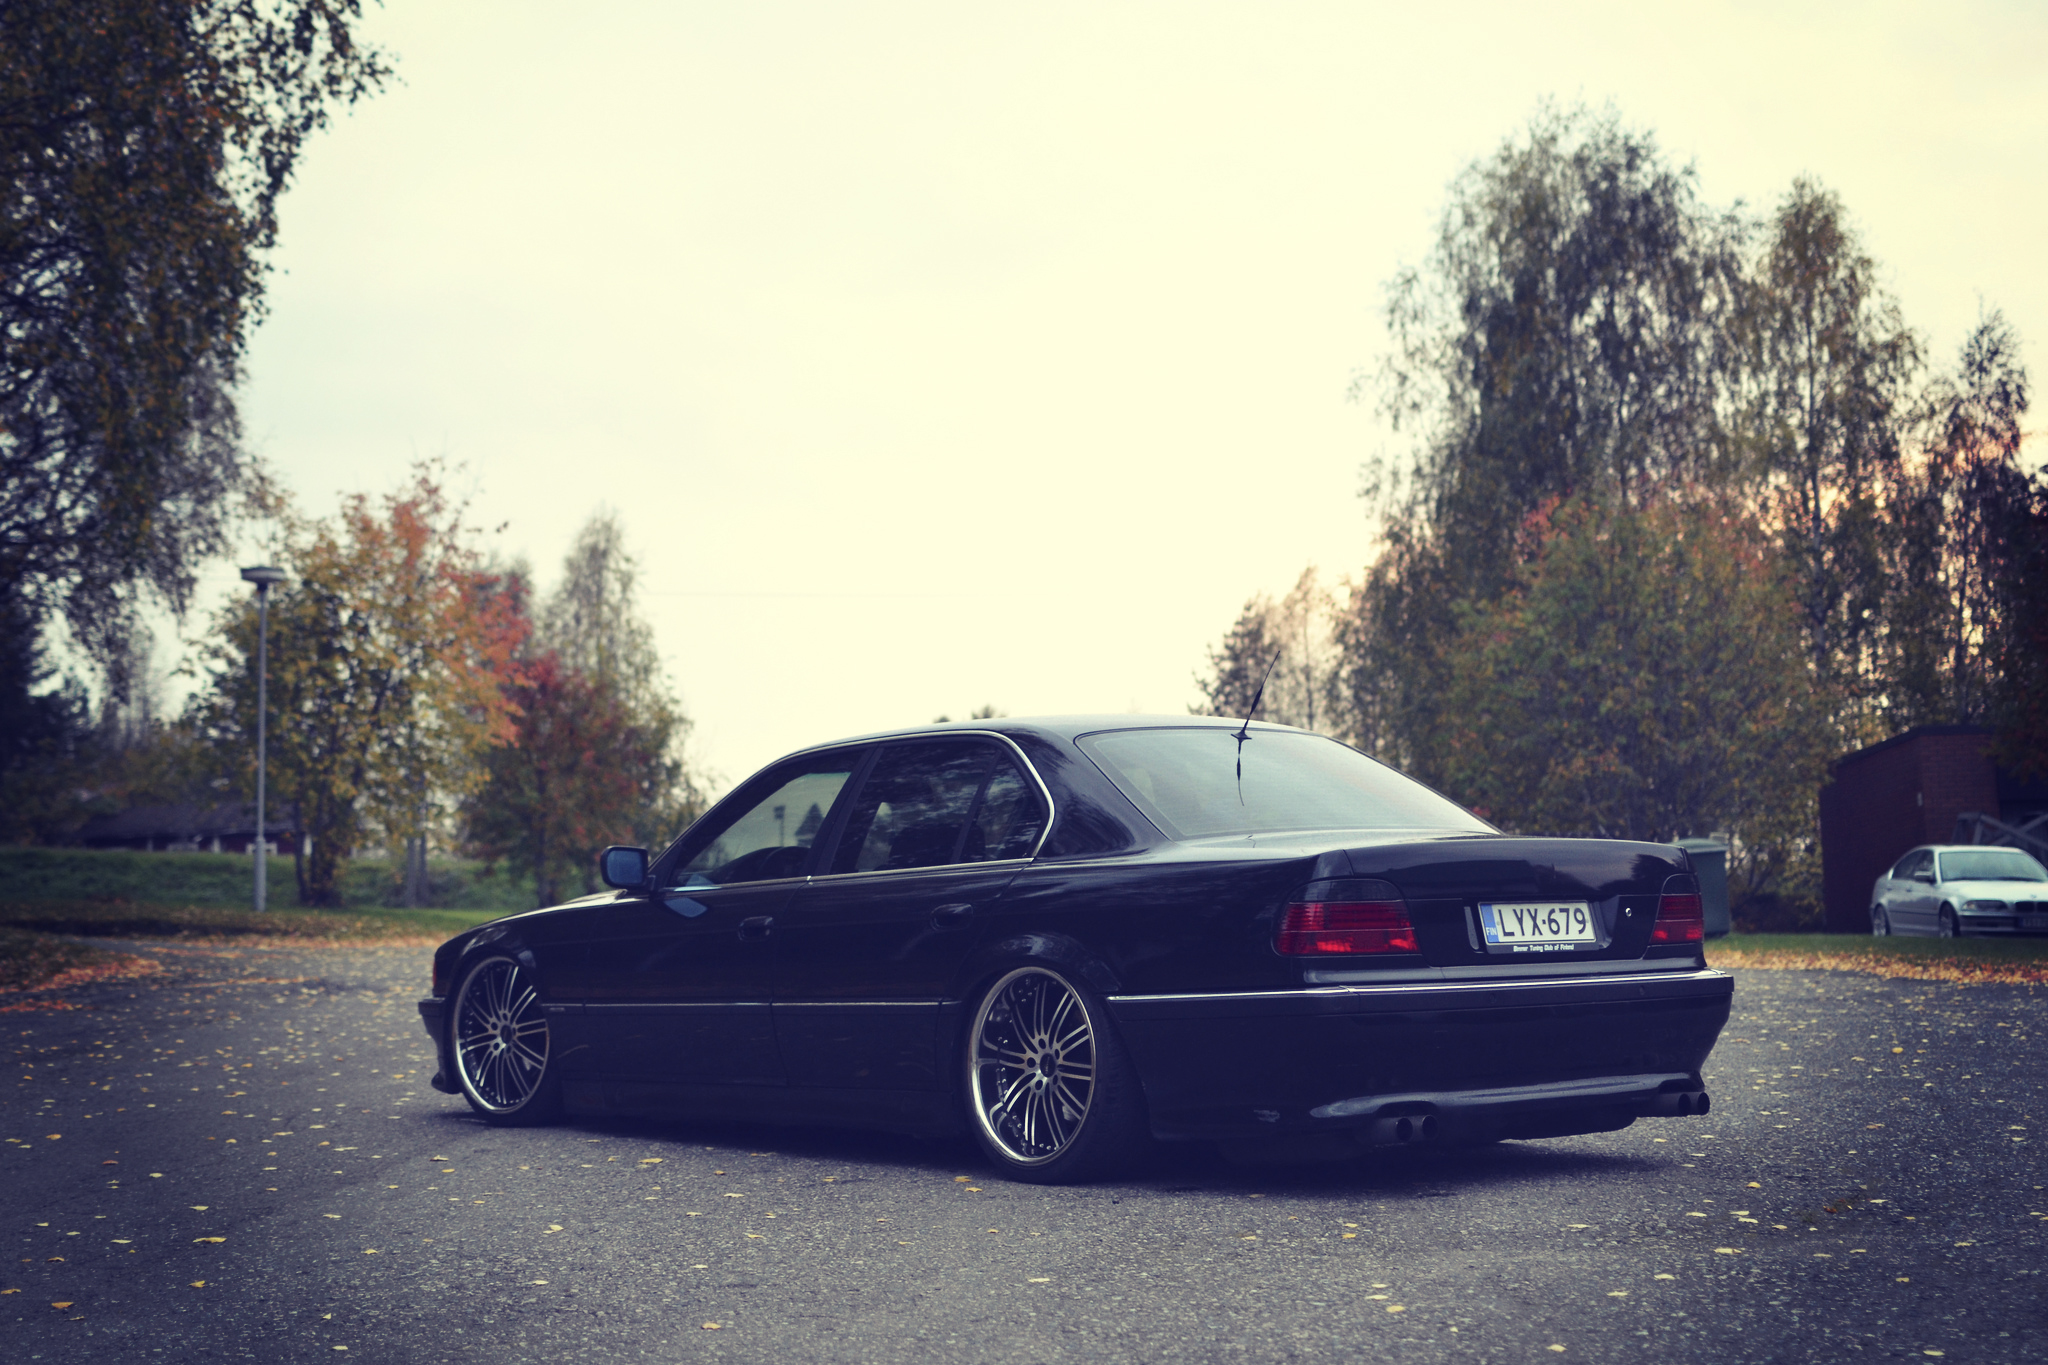 Download Wallpaper Autumn Lights Tuning Bmw Bmw 740 Stance E38 Section Bmw In Resolution 2048x1365